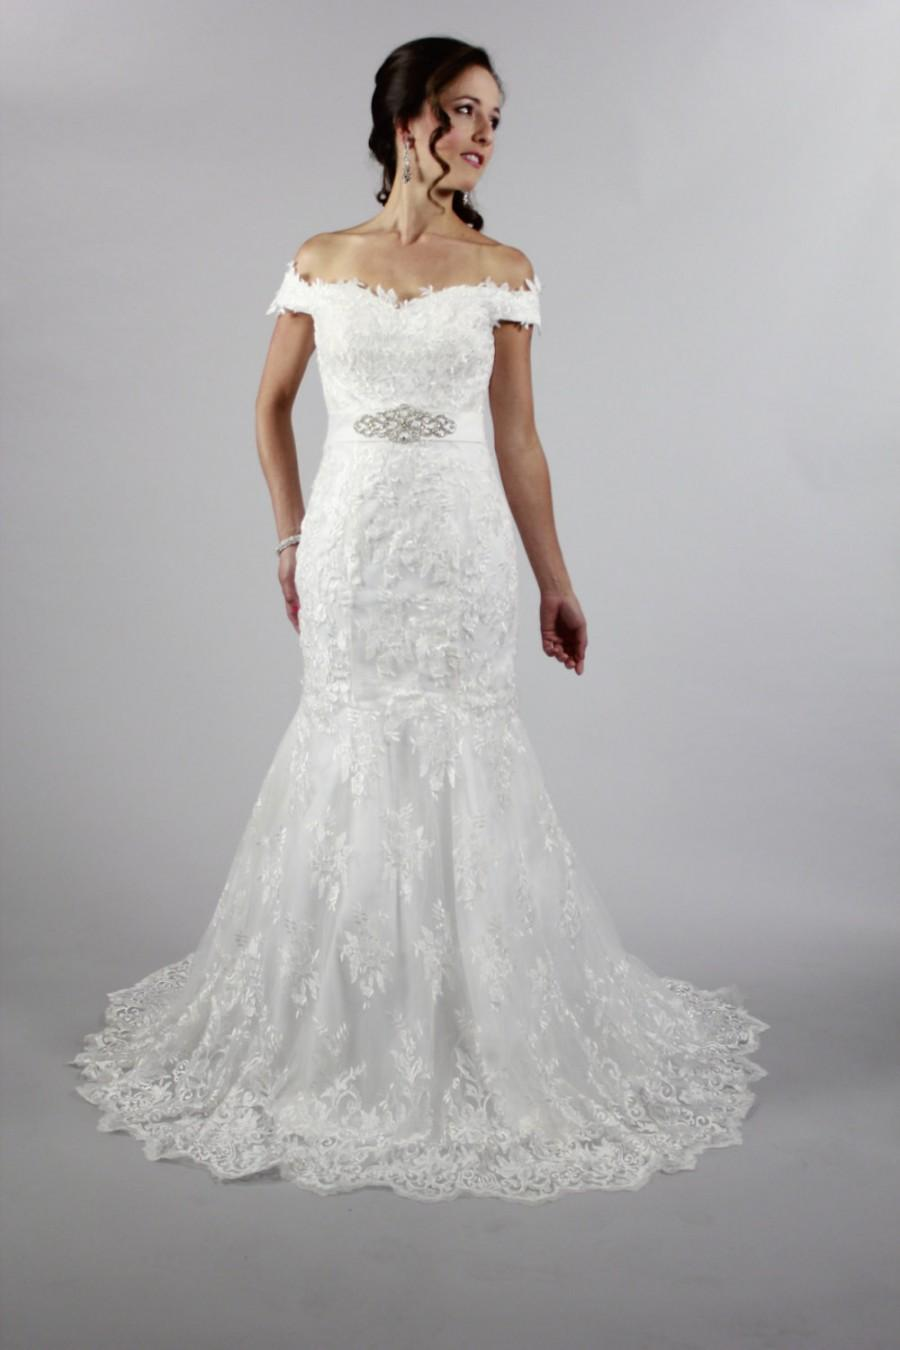 Lace wedding dress beaded belt